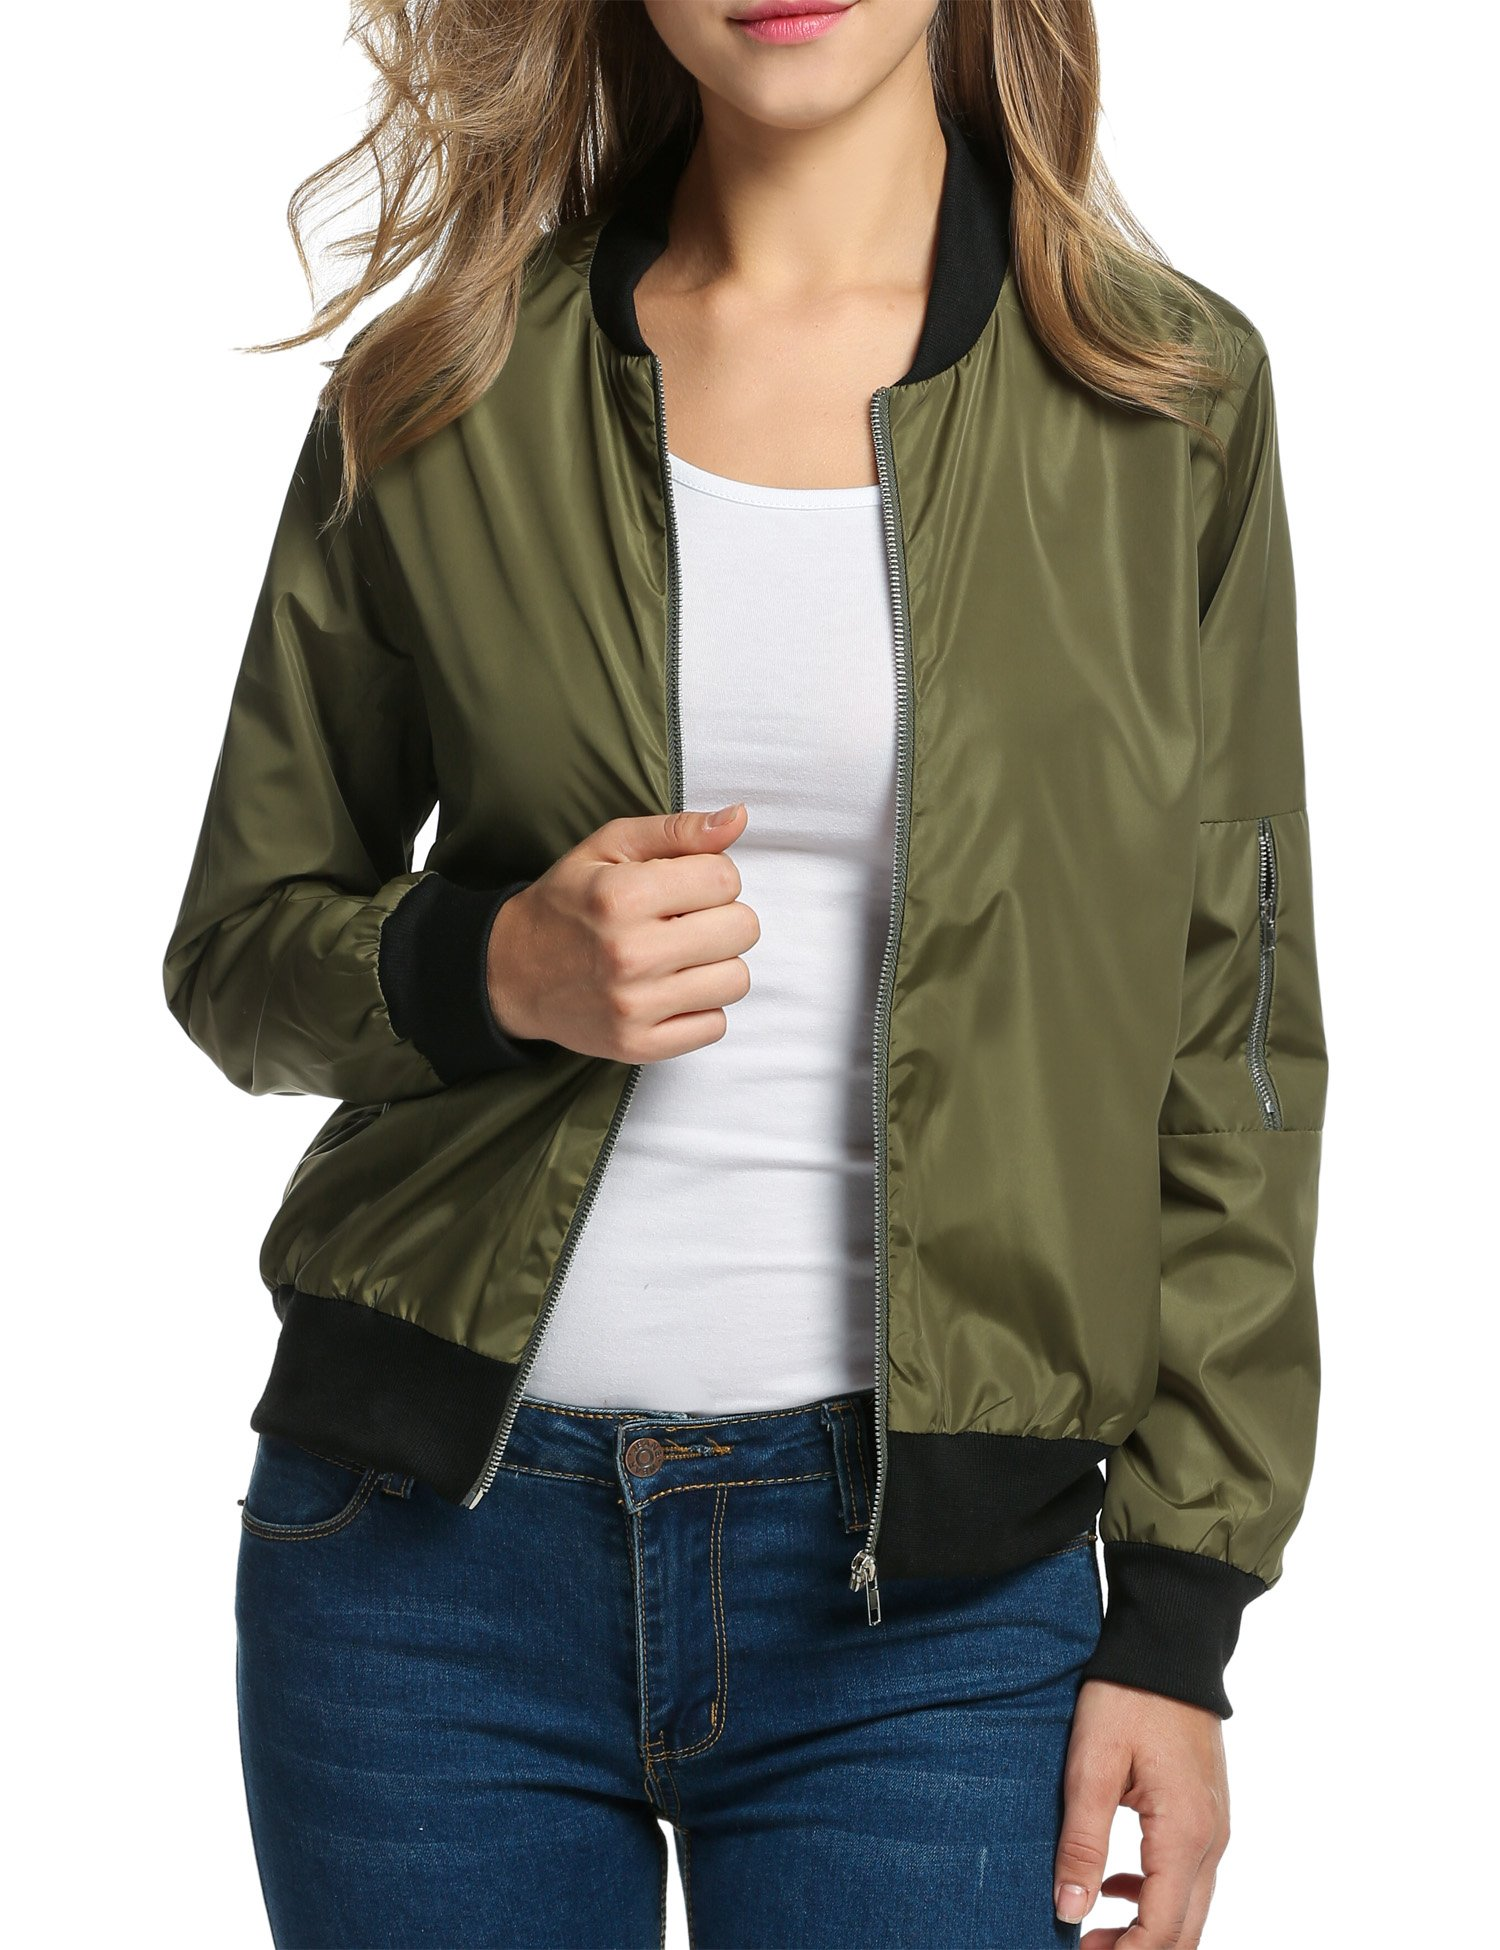 HOTOUCH Women's Long Sleeve Stand Collar Bomber Jacket Coats Outerwear Army Green L